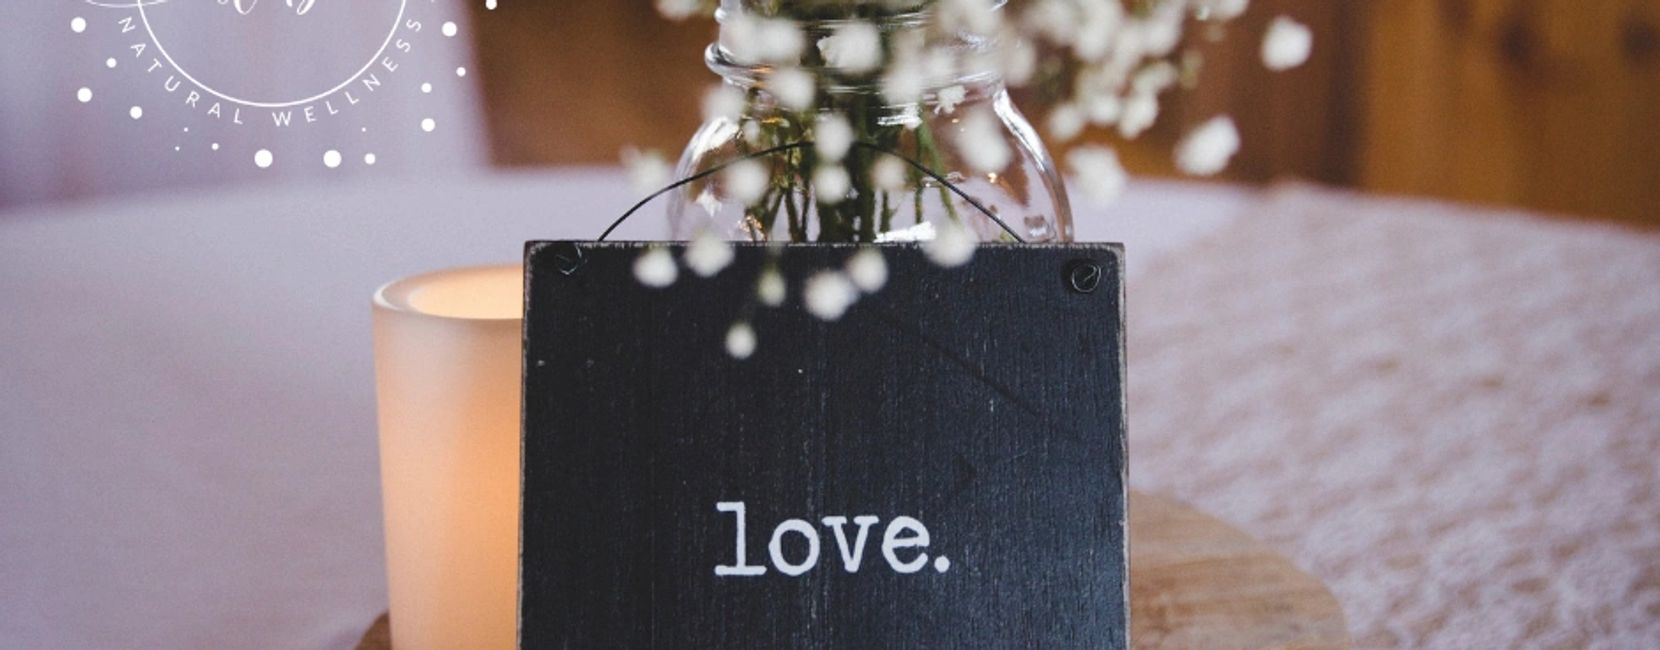 love word, candle, white flowers